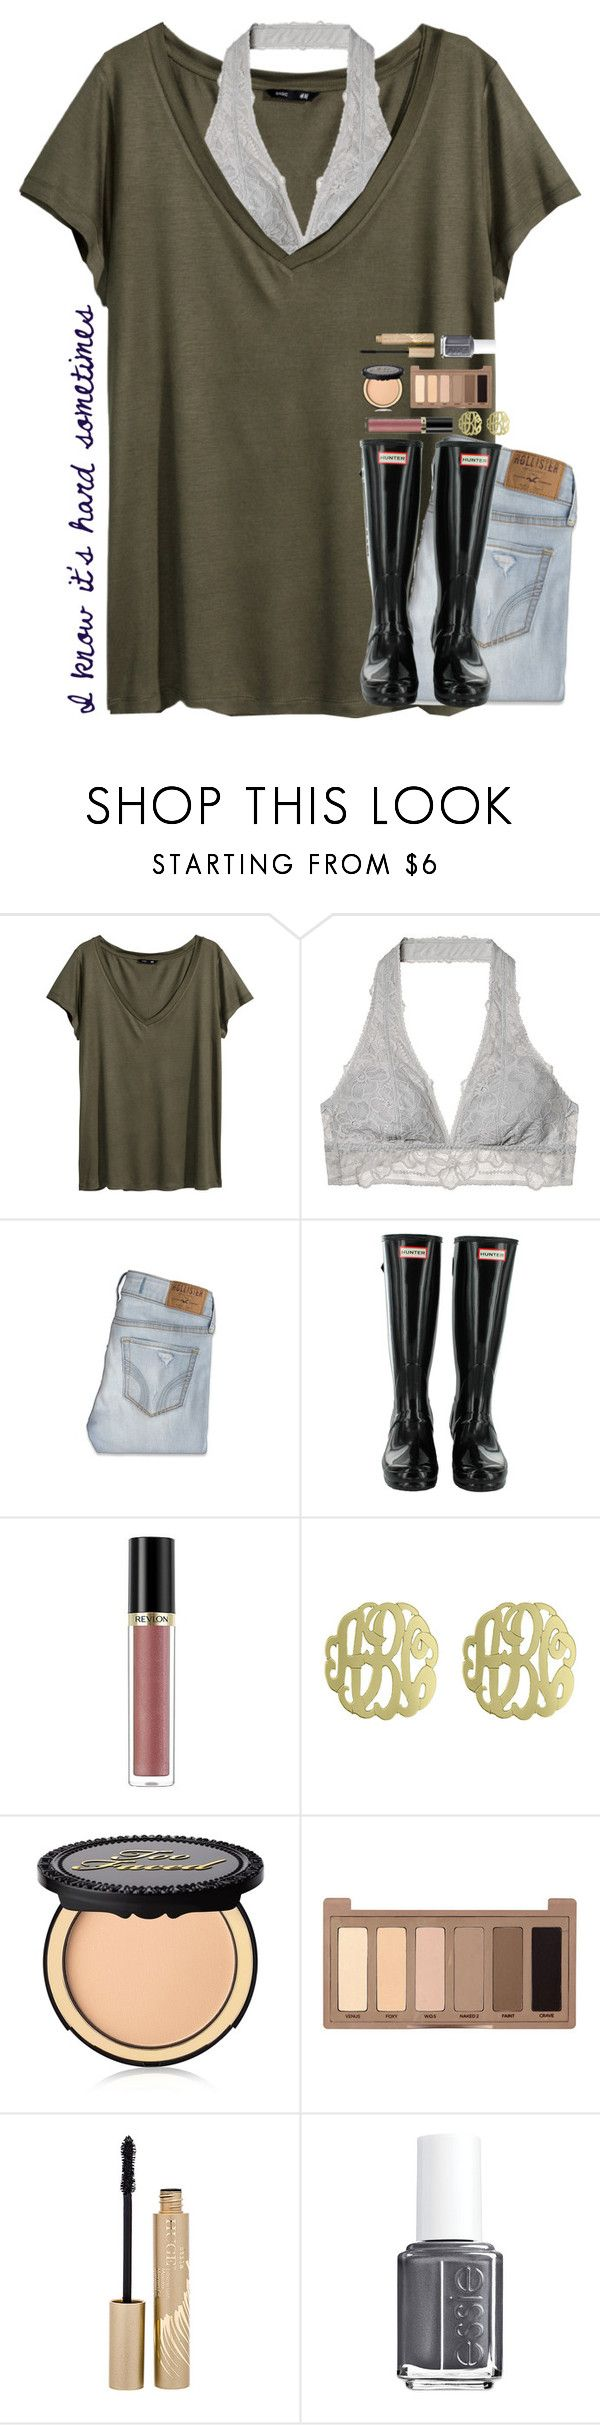 """""""I know it's hard sometimes"""" by theafergusma ❤ liked on Polyvore featuring H&M, Victoria's Secret, Hollister Co., Revlon, Initial Reaction, Too Faced Cosmetics, Urban Decay, Stila and Essie"""